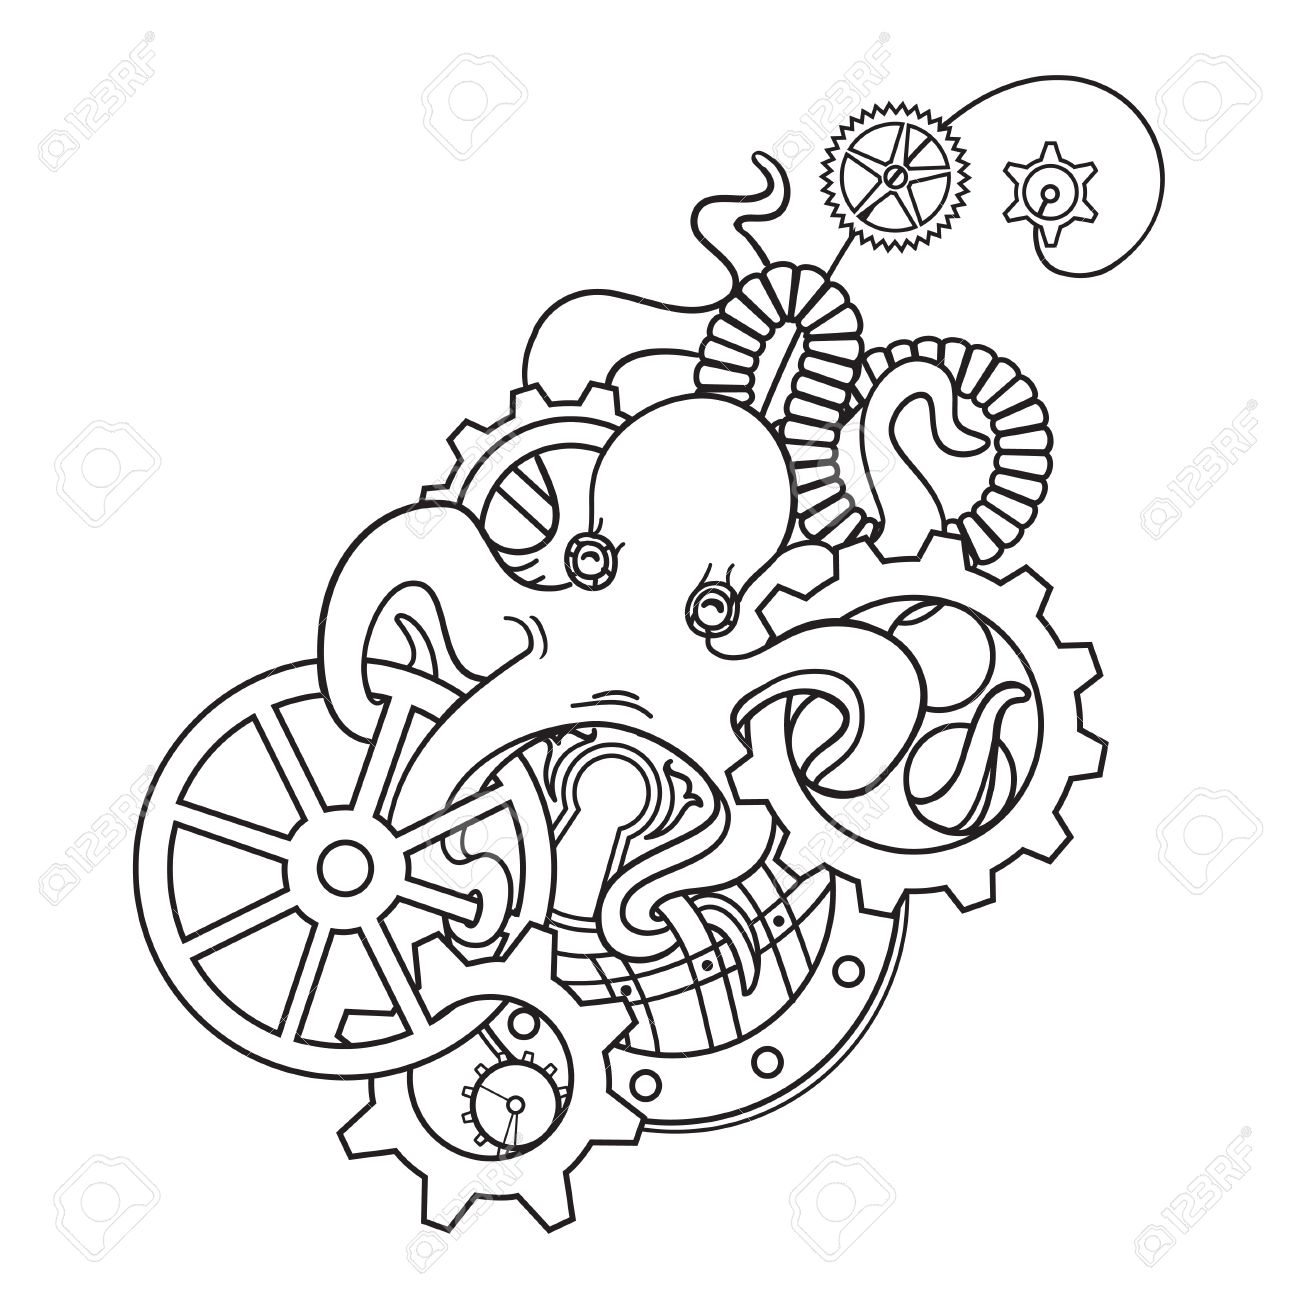 the original illustration of steampunk octopus with gears and